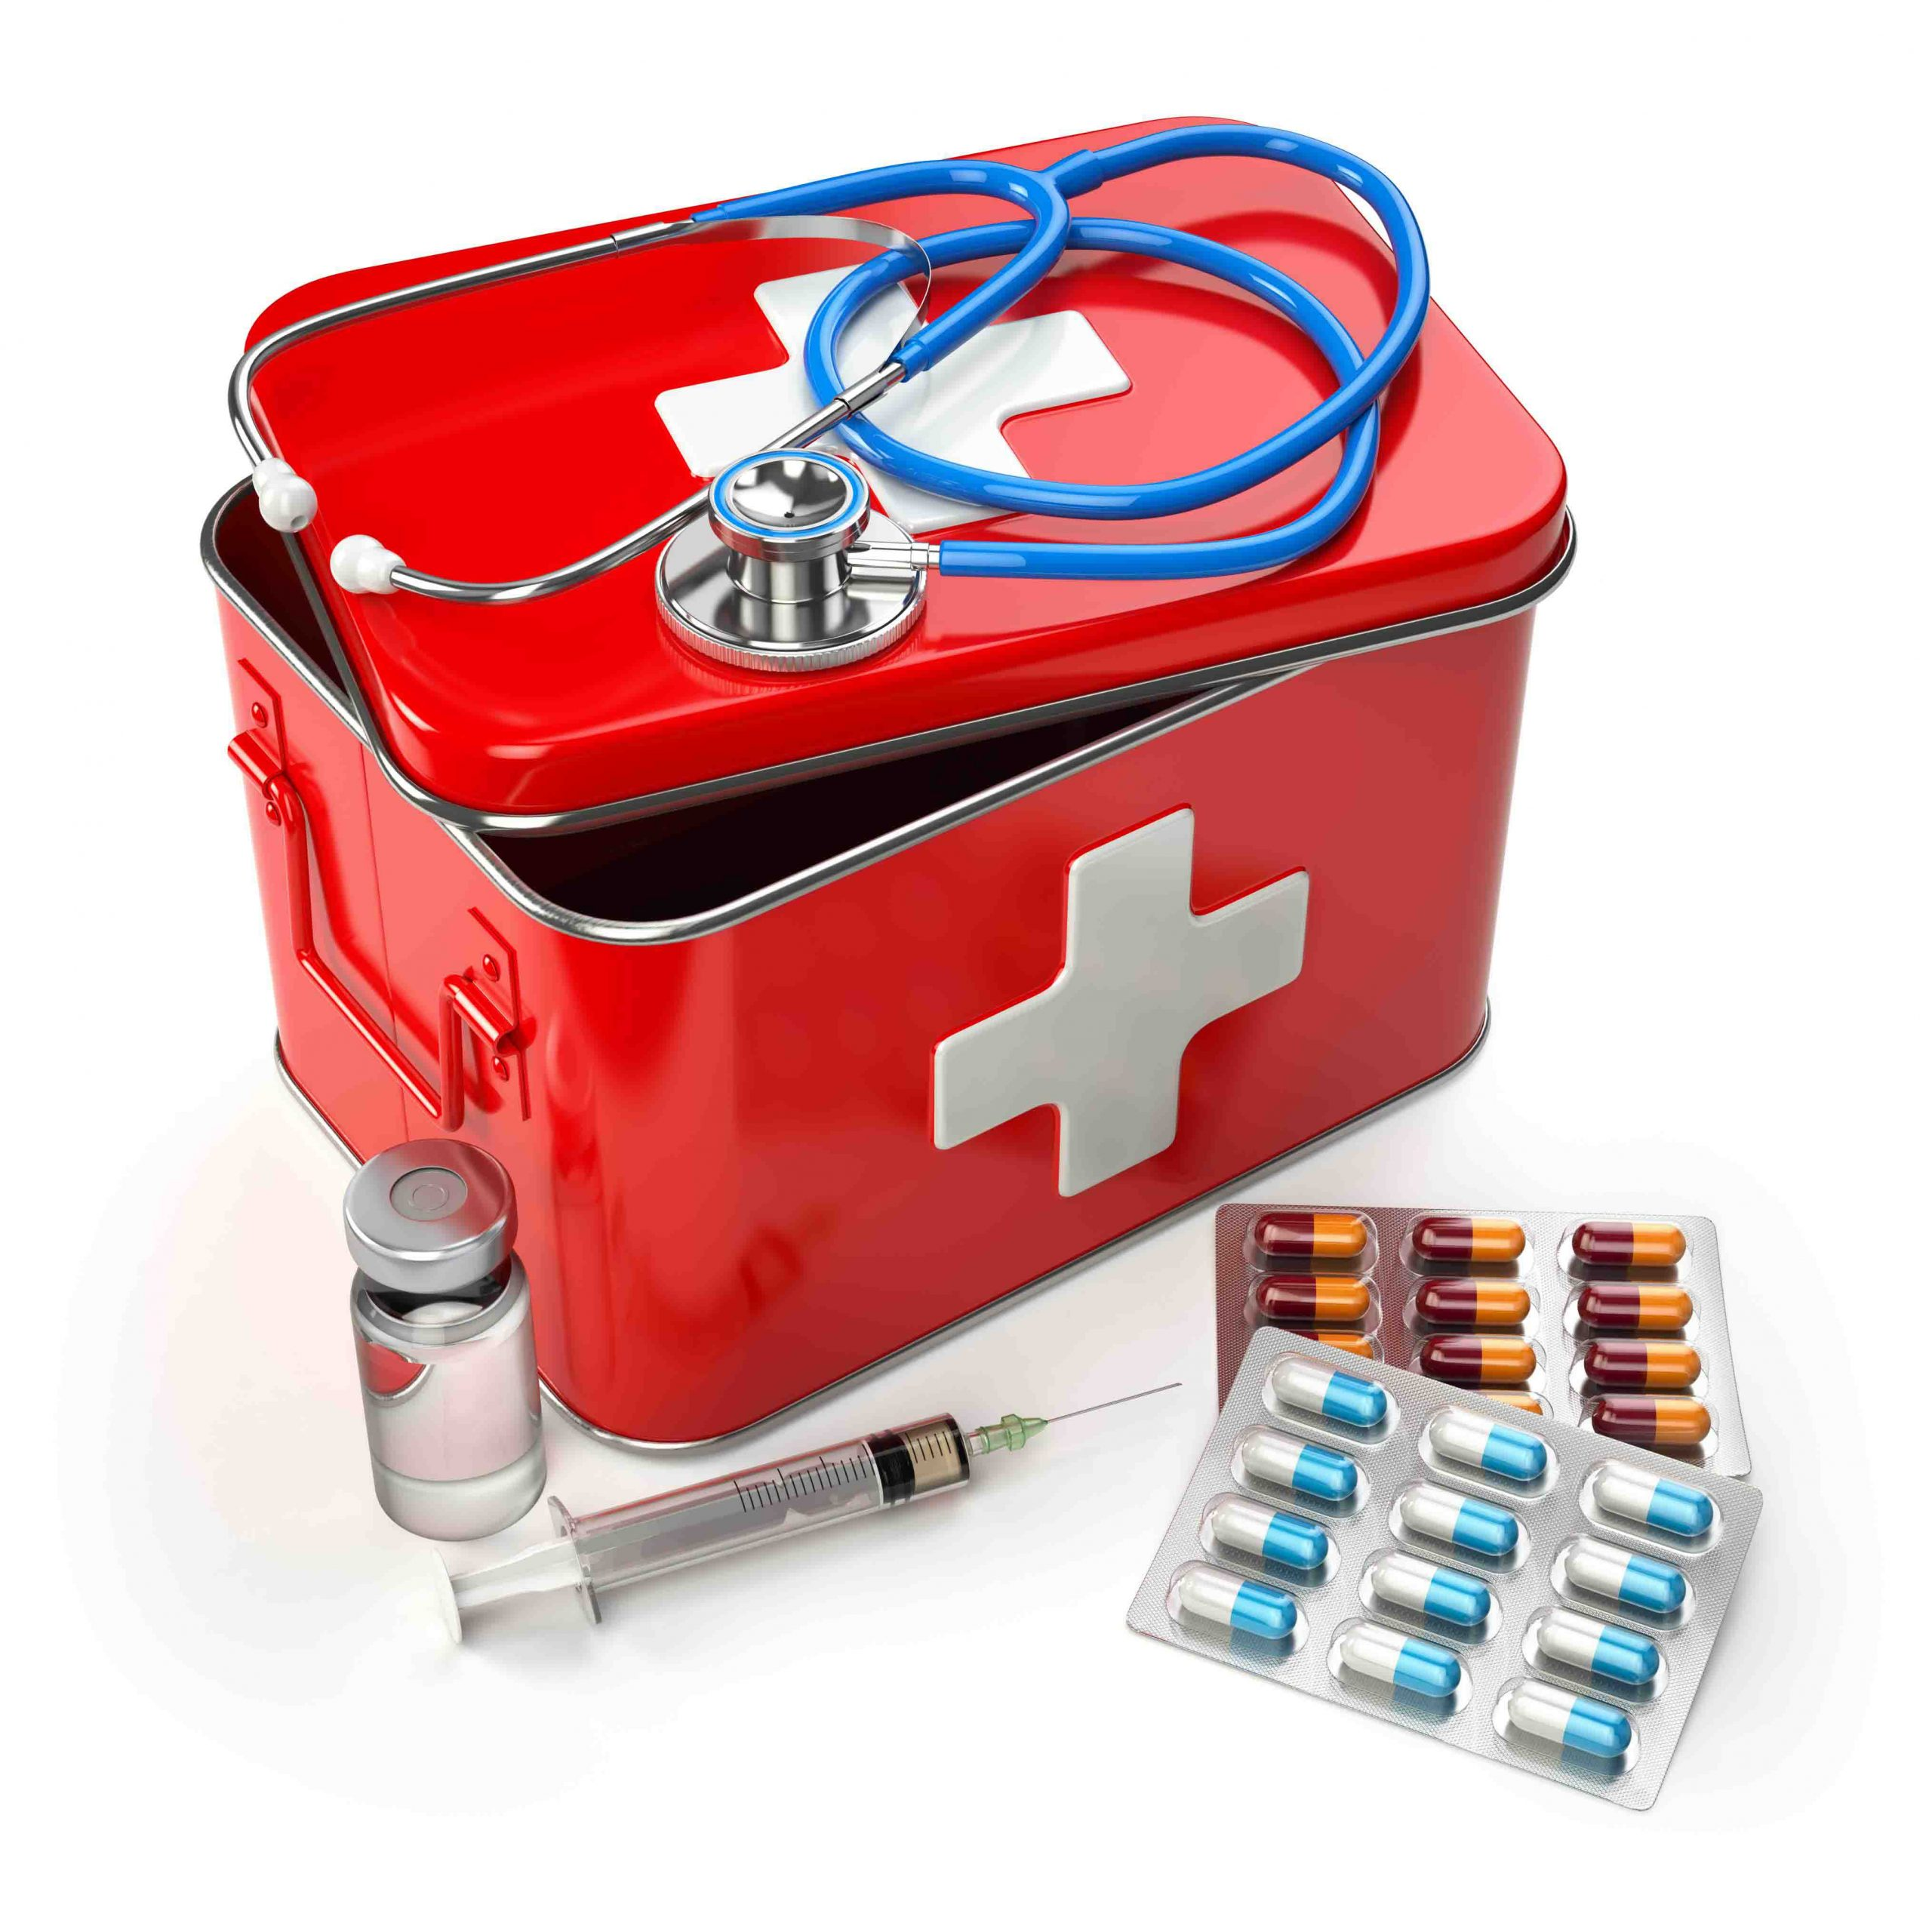 first-aid-kit-with-stethoscope-pills-and-syringe